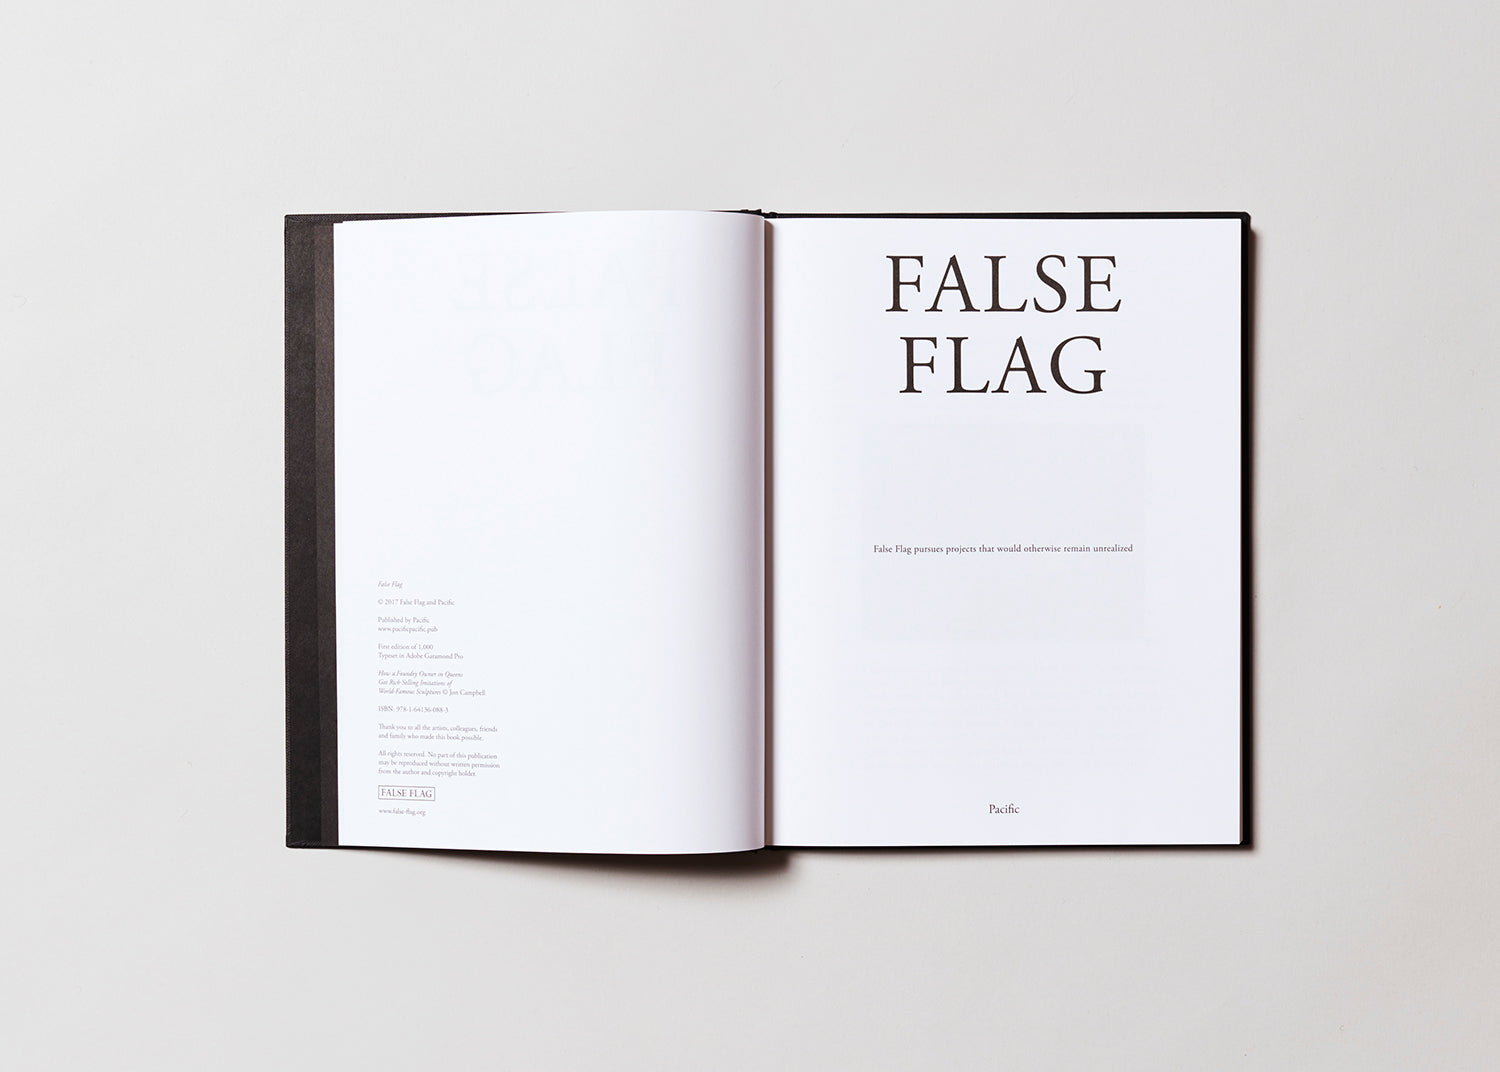 False Flag catalogue, designed and published by Pacific